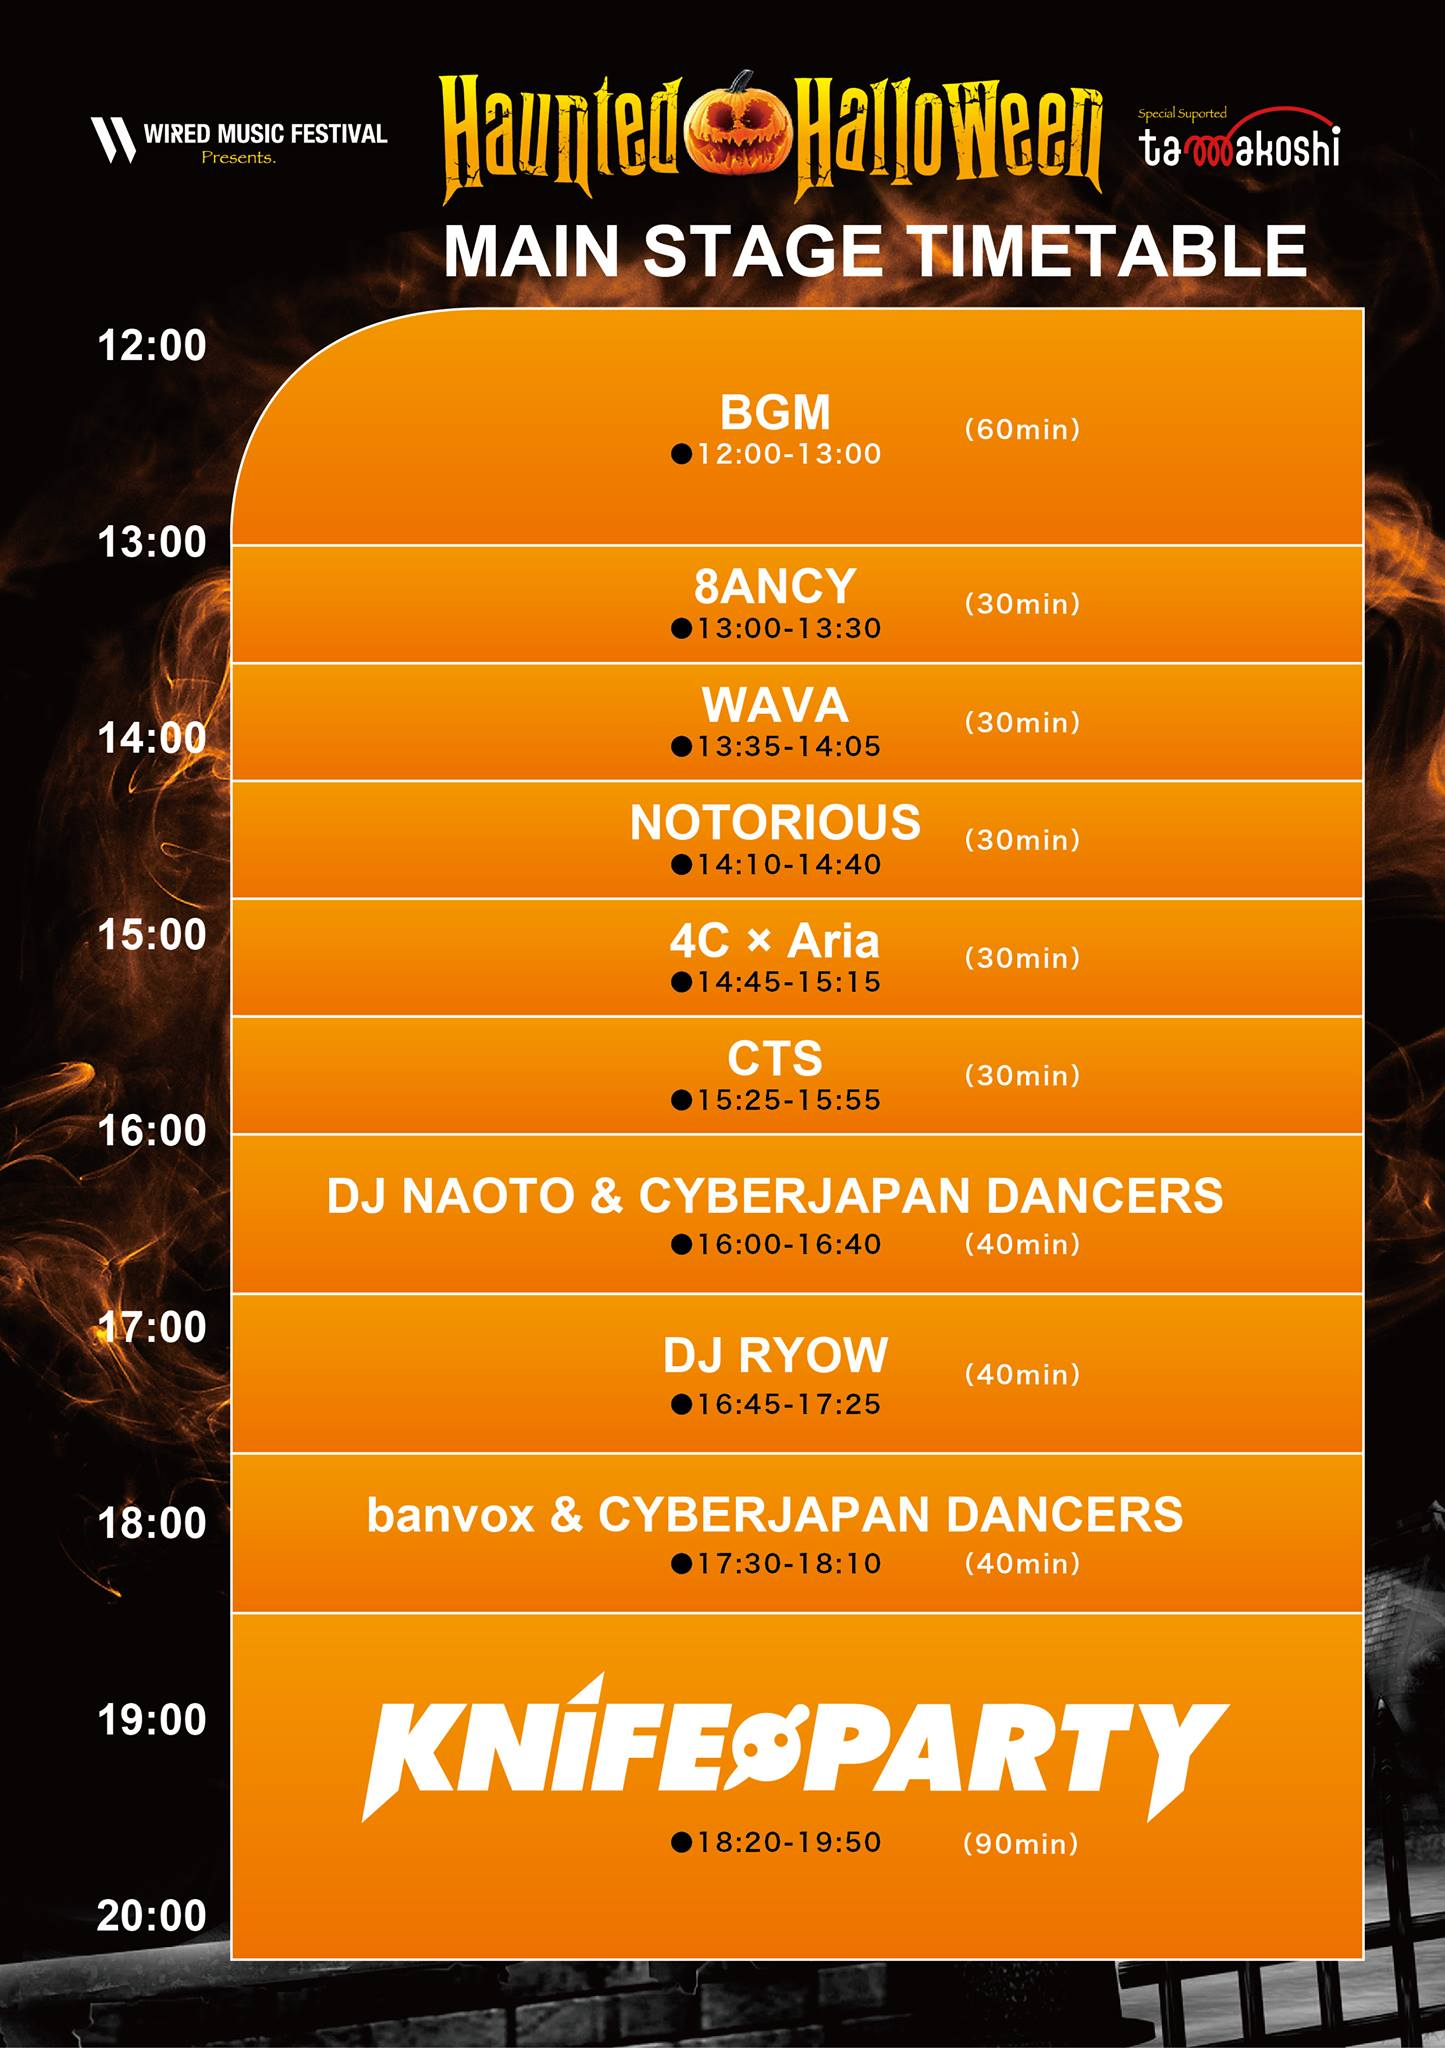 wired-music-festival-haunted-halloween-timetable-main